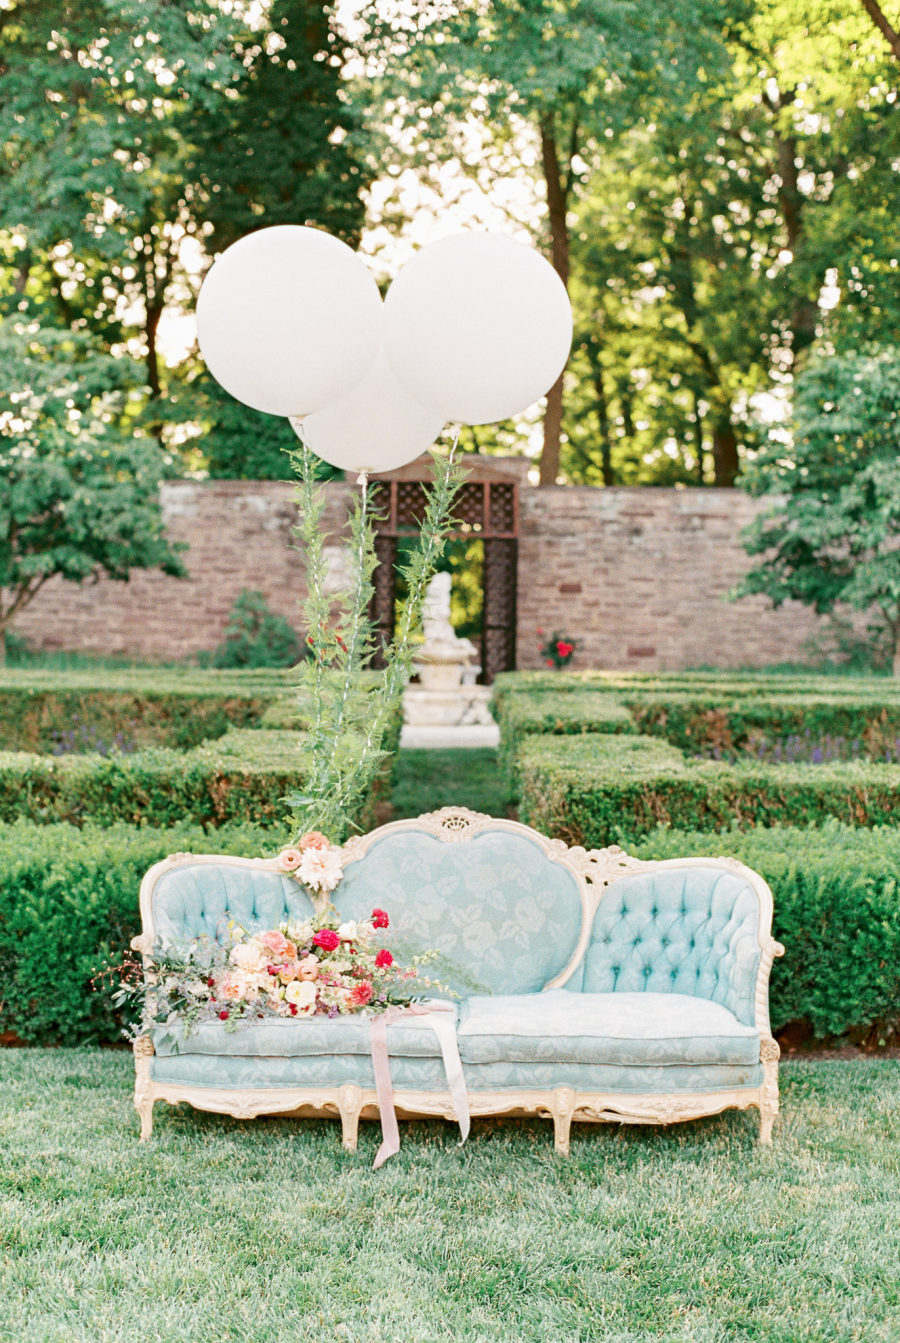 The beautiful garden was spruced up with a refined blue sofa and white baloons